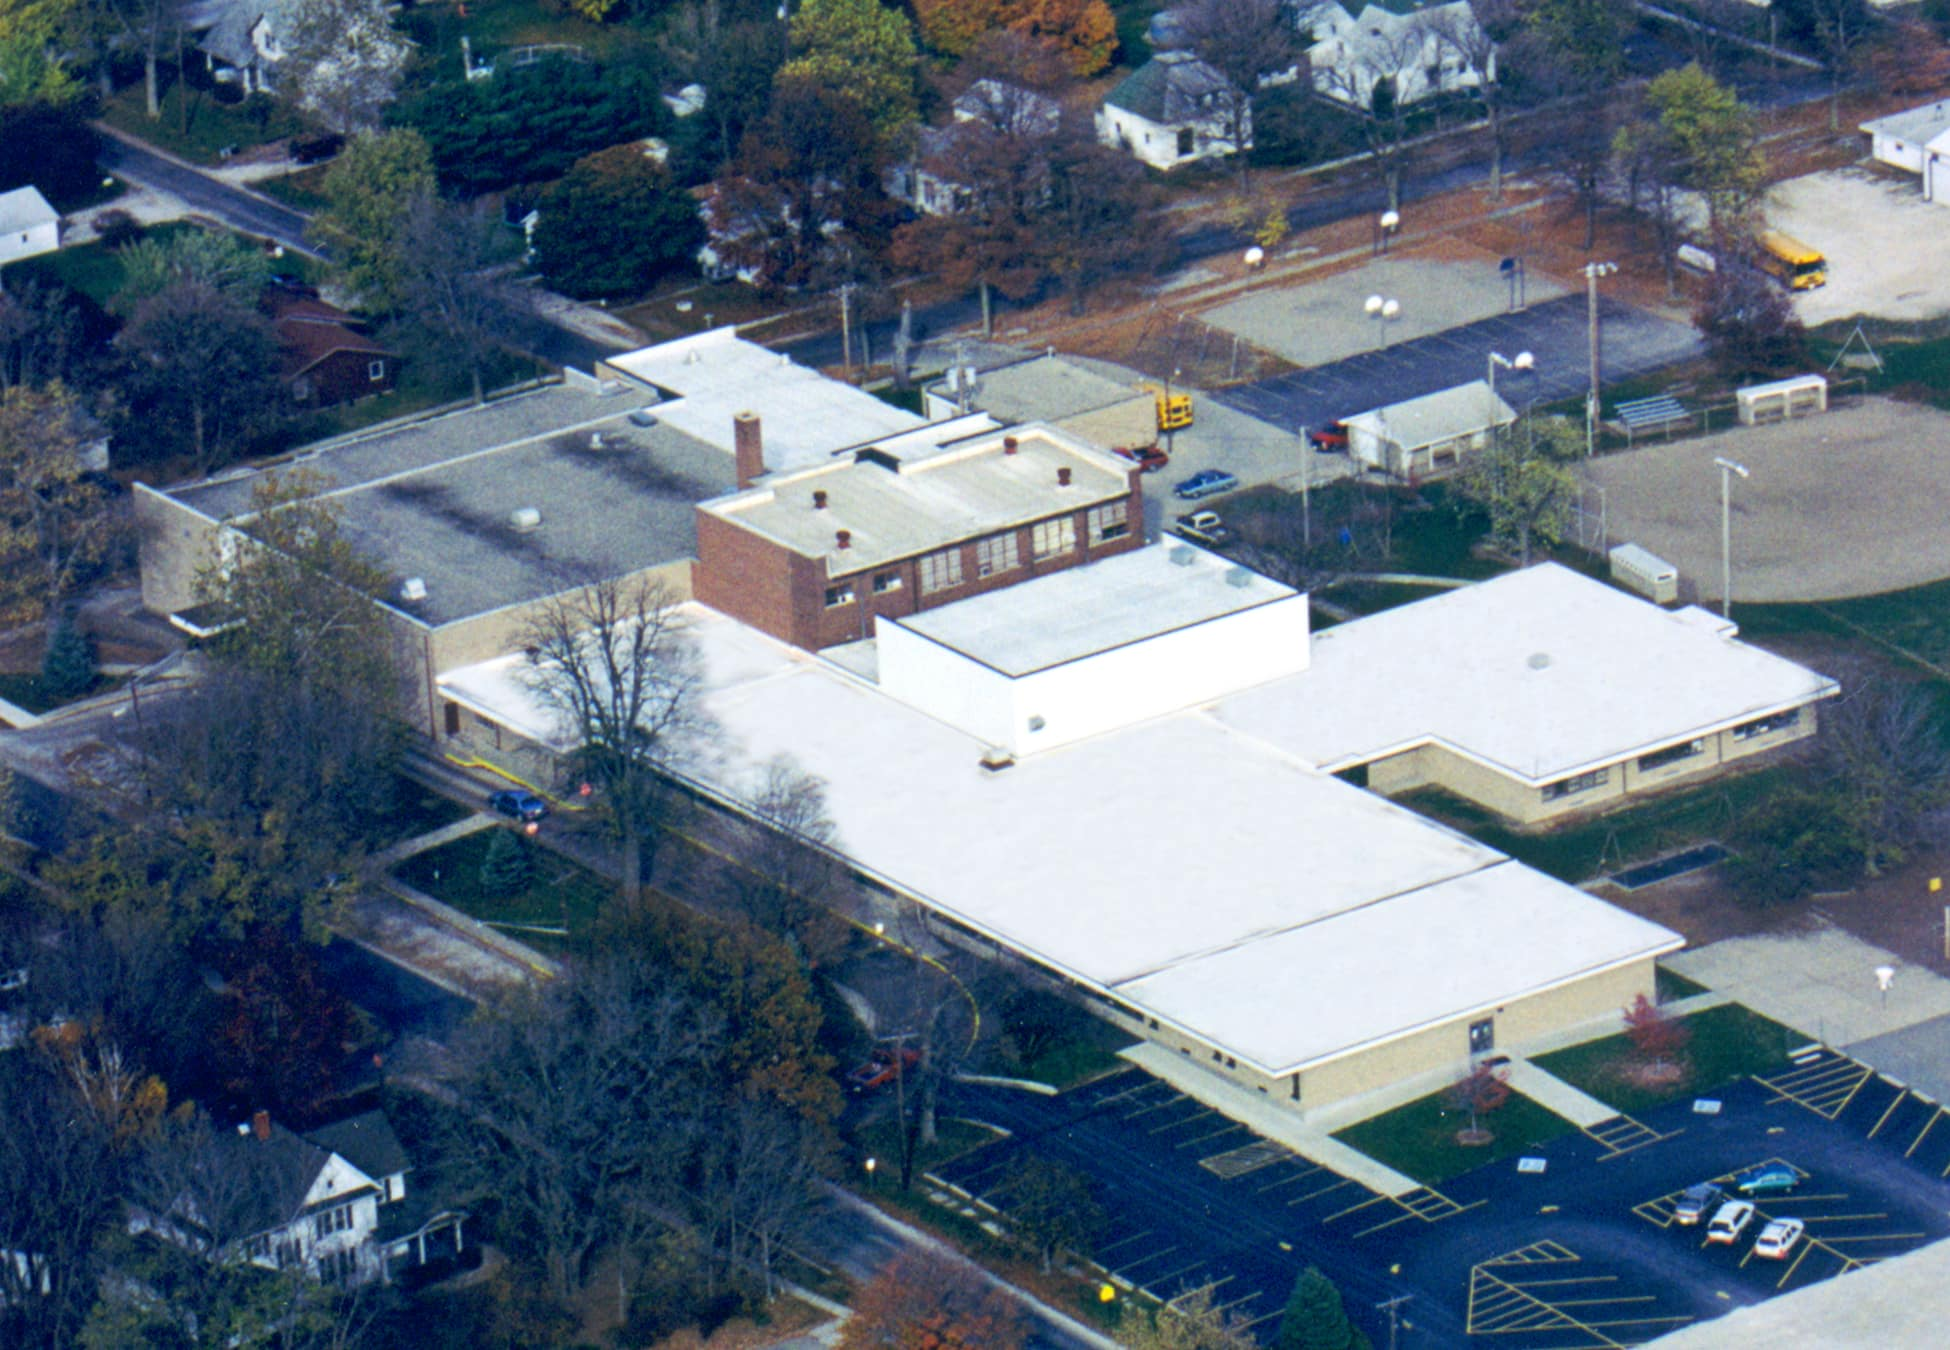 Flat Roof - St. Joseph IL Grade School - Commercial Contractors Illinois